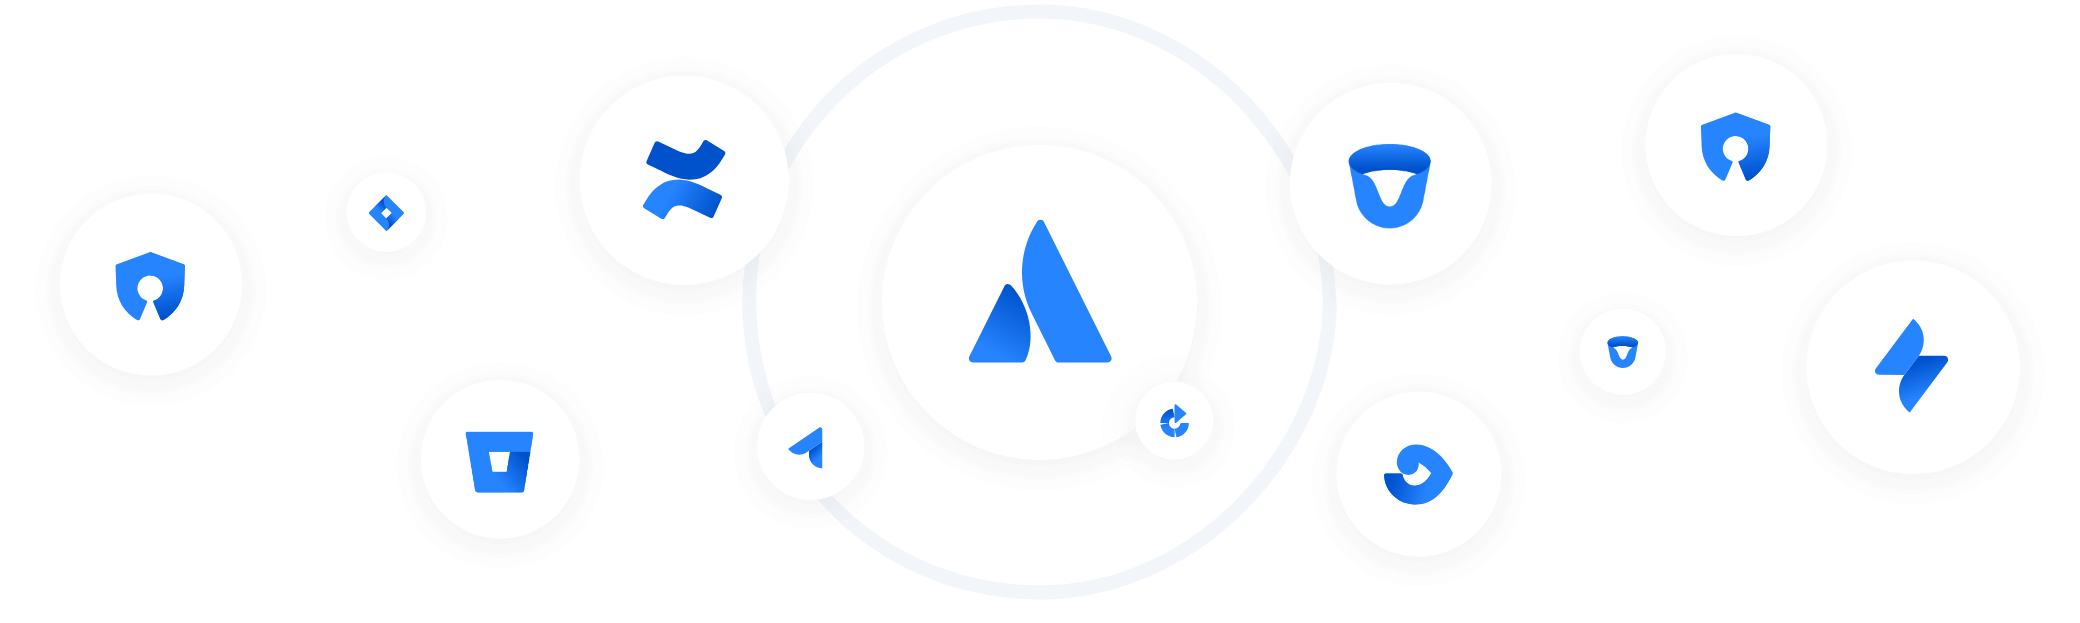 Atlassian enviroment for companies